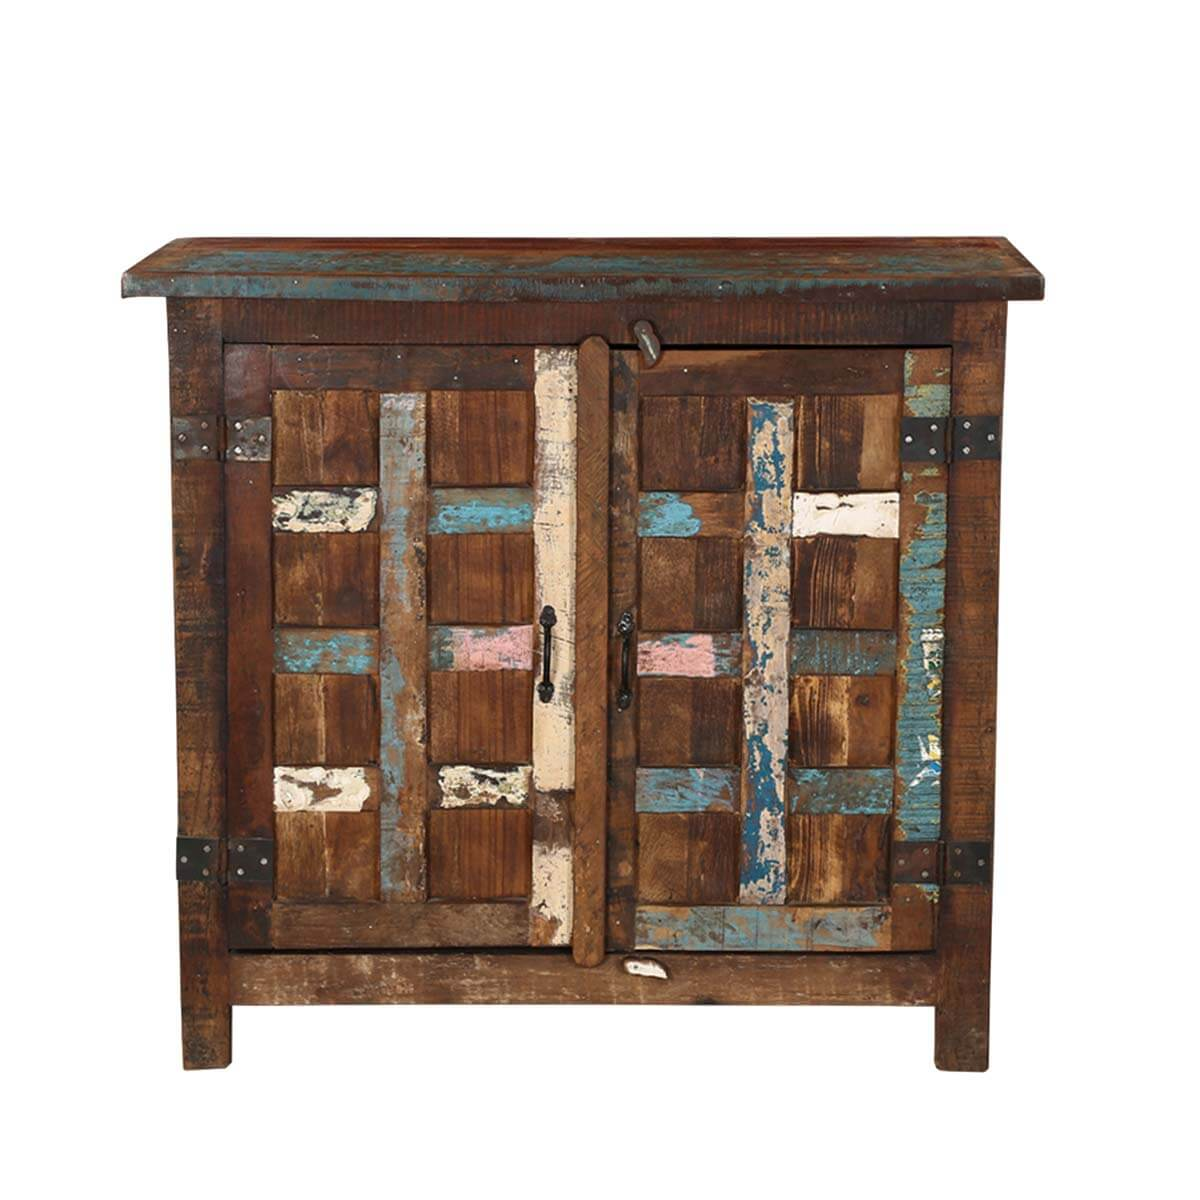 Distress Cabinets: Bryant Distressed Rustic Reclaimed Wood 2 Door Storage Cabinet